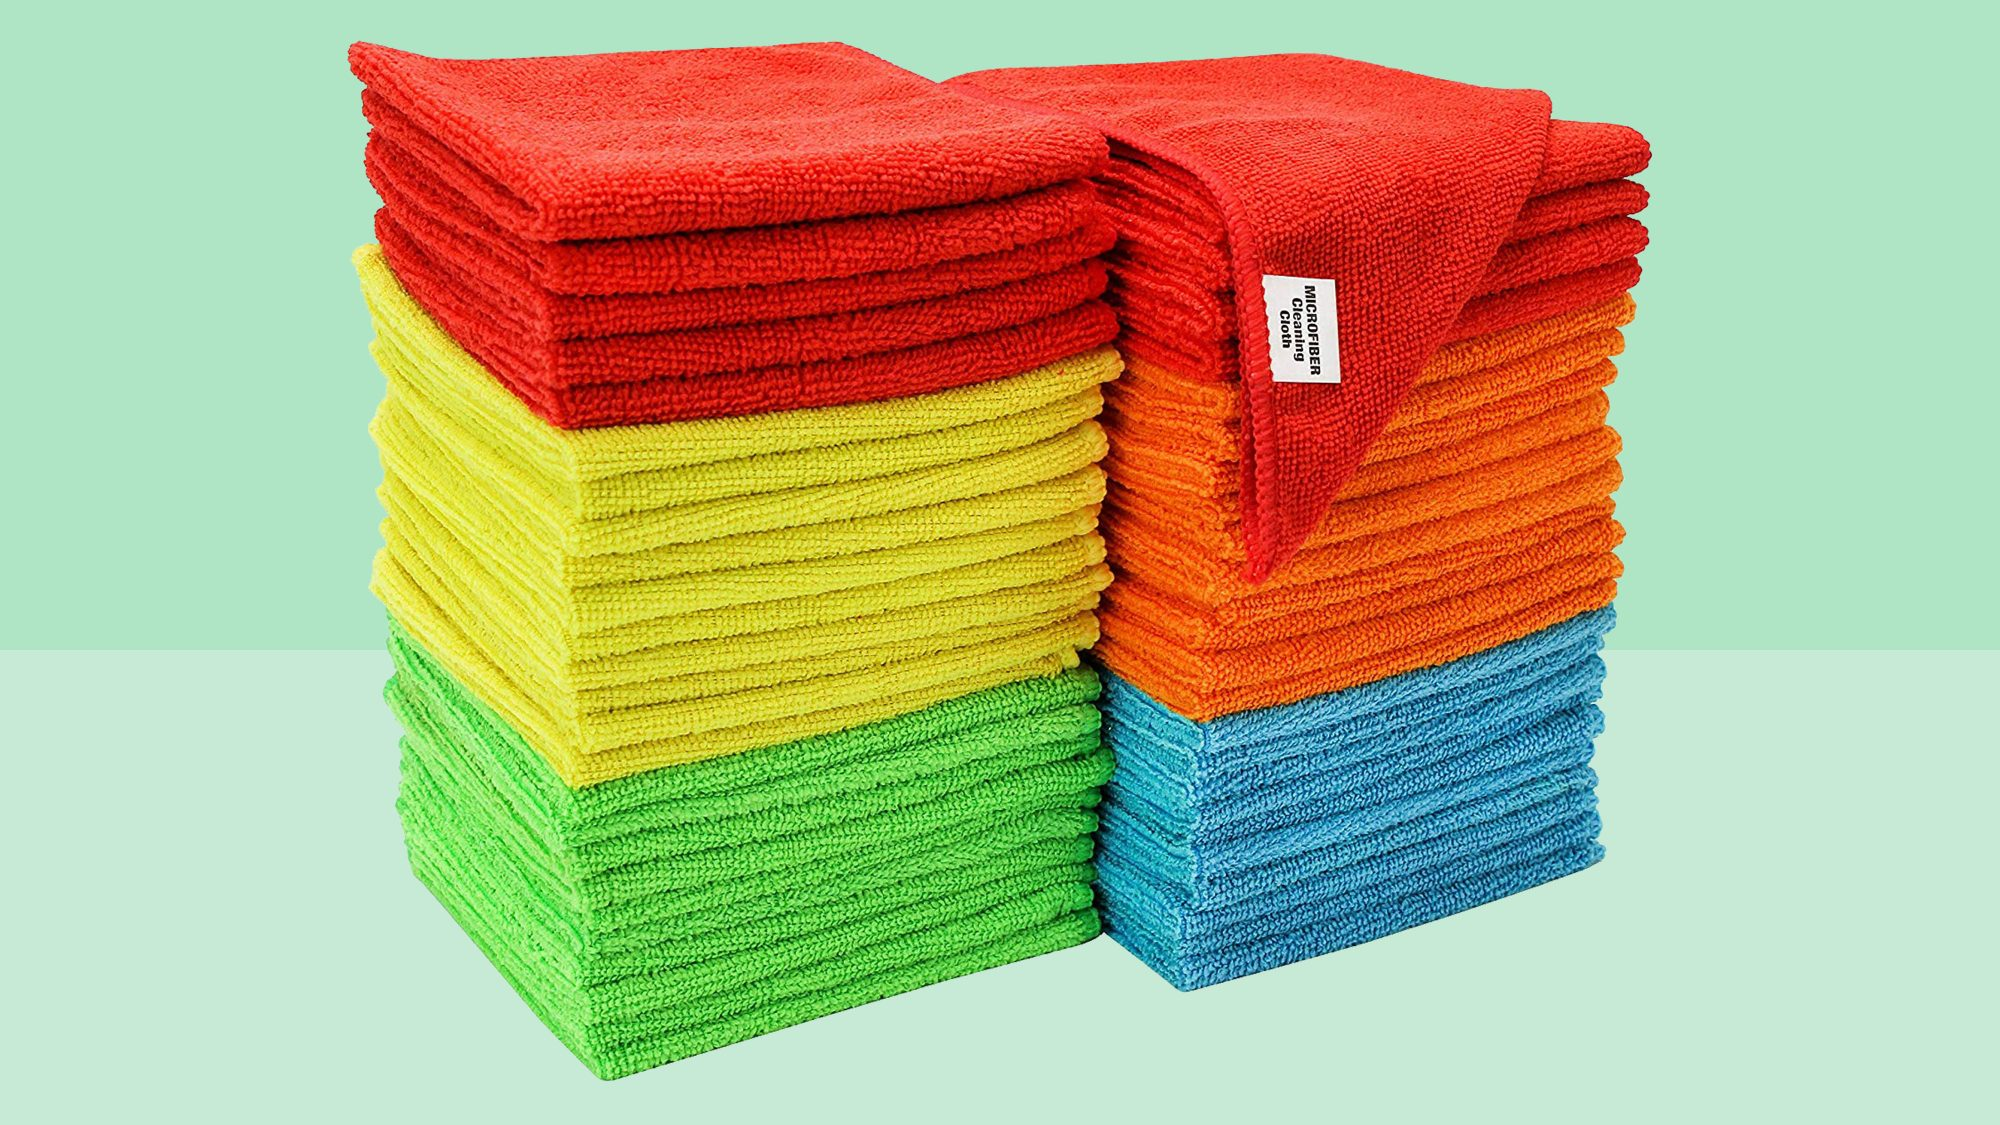 S&T INC. 968601 Assorted 50 Pack Microfiber Cleaning Cloths Tout